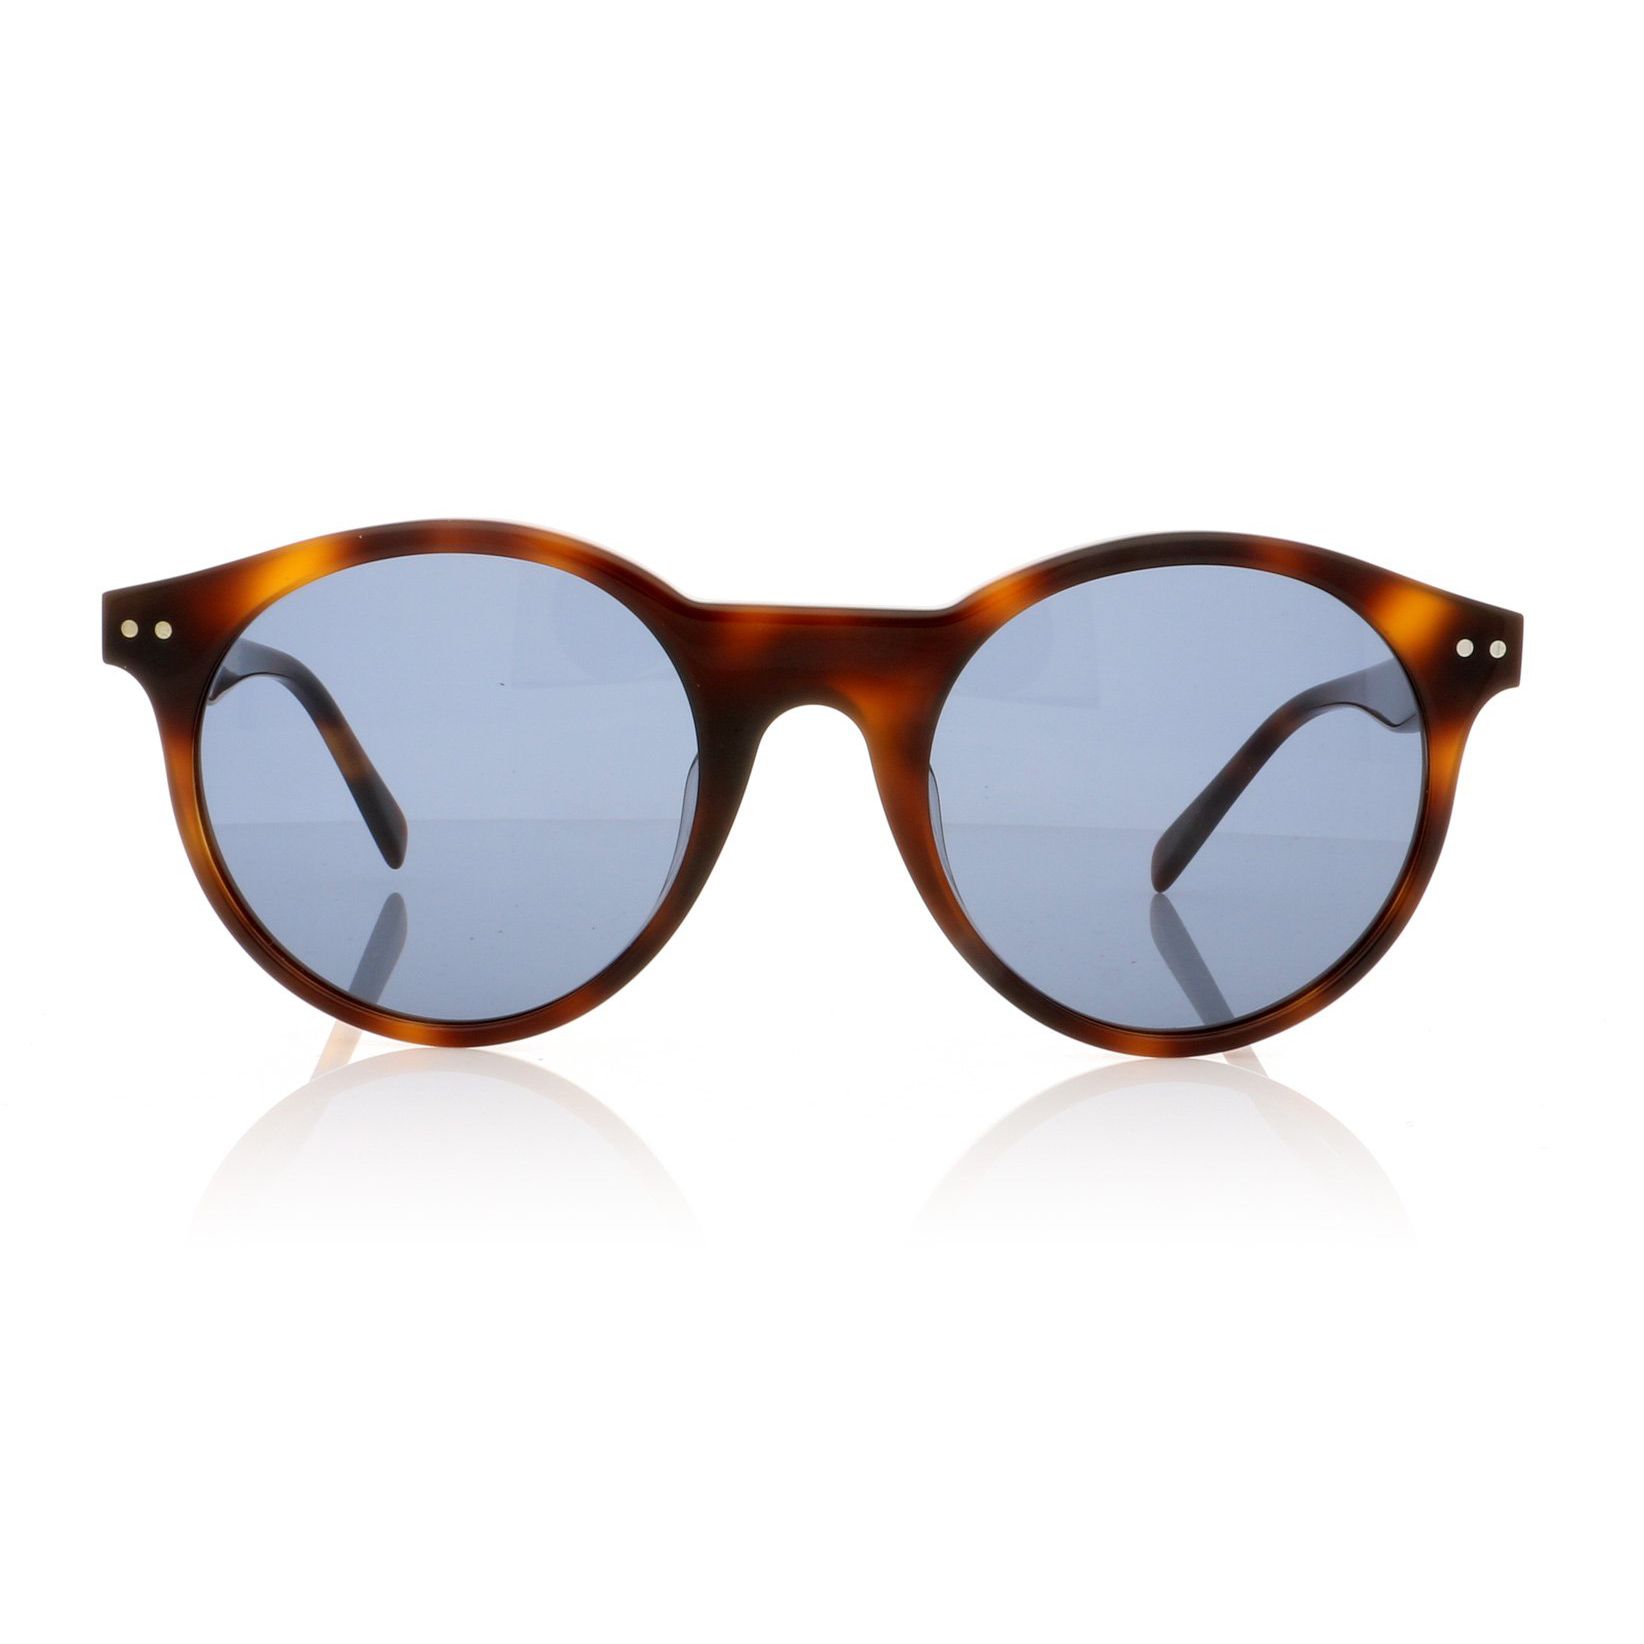 CELINE- CL40010U Sunglasses (Sold Out)  £270 (Sold out)  COLOUR Tortoise  CATEGORY SUN  MATERIAL Acetate  SHAPE Round